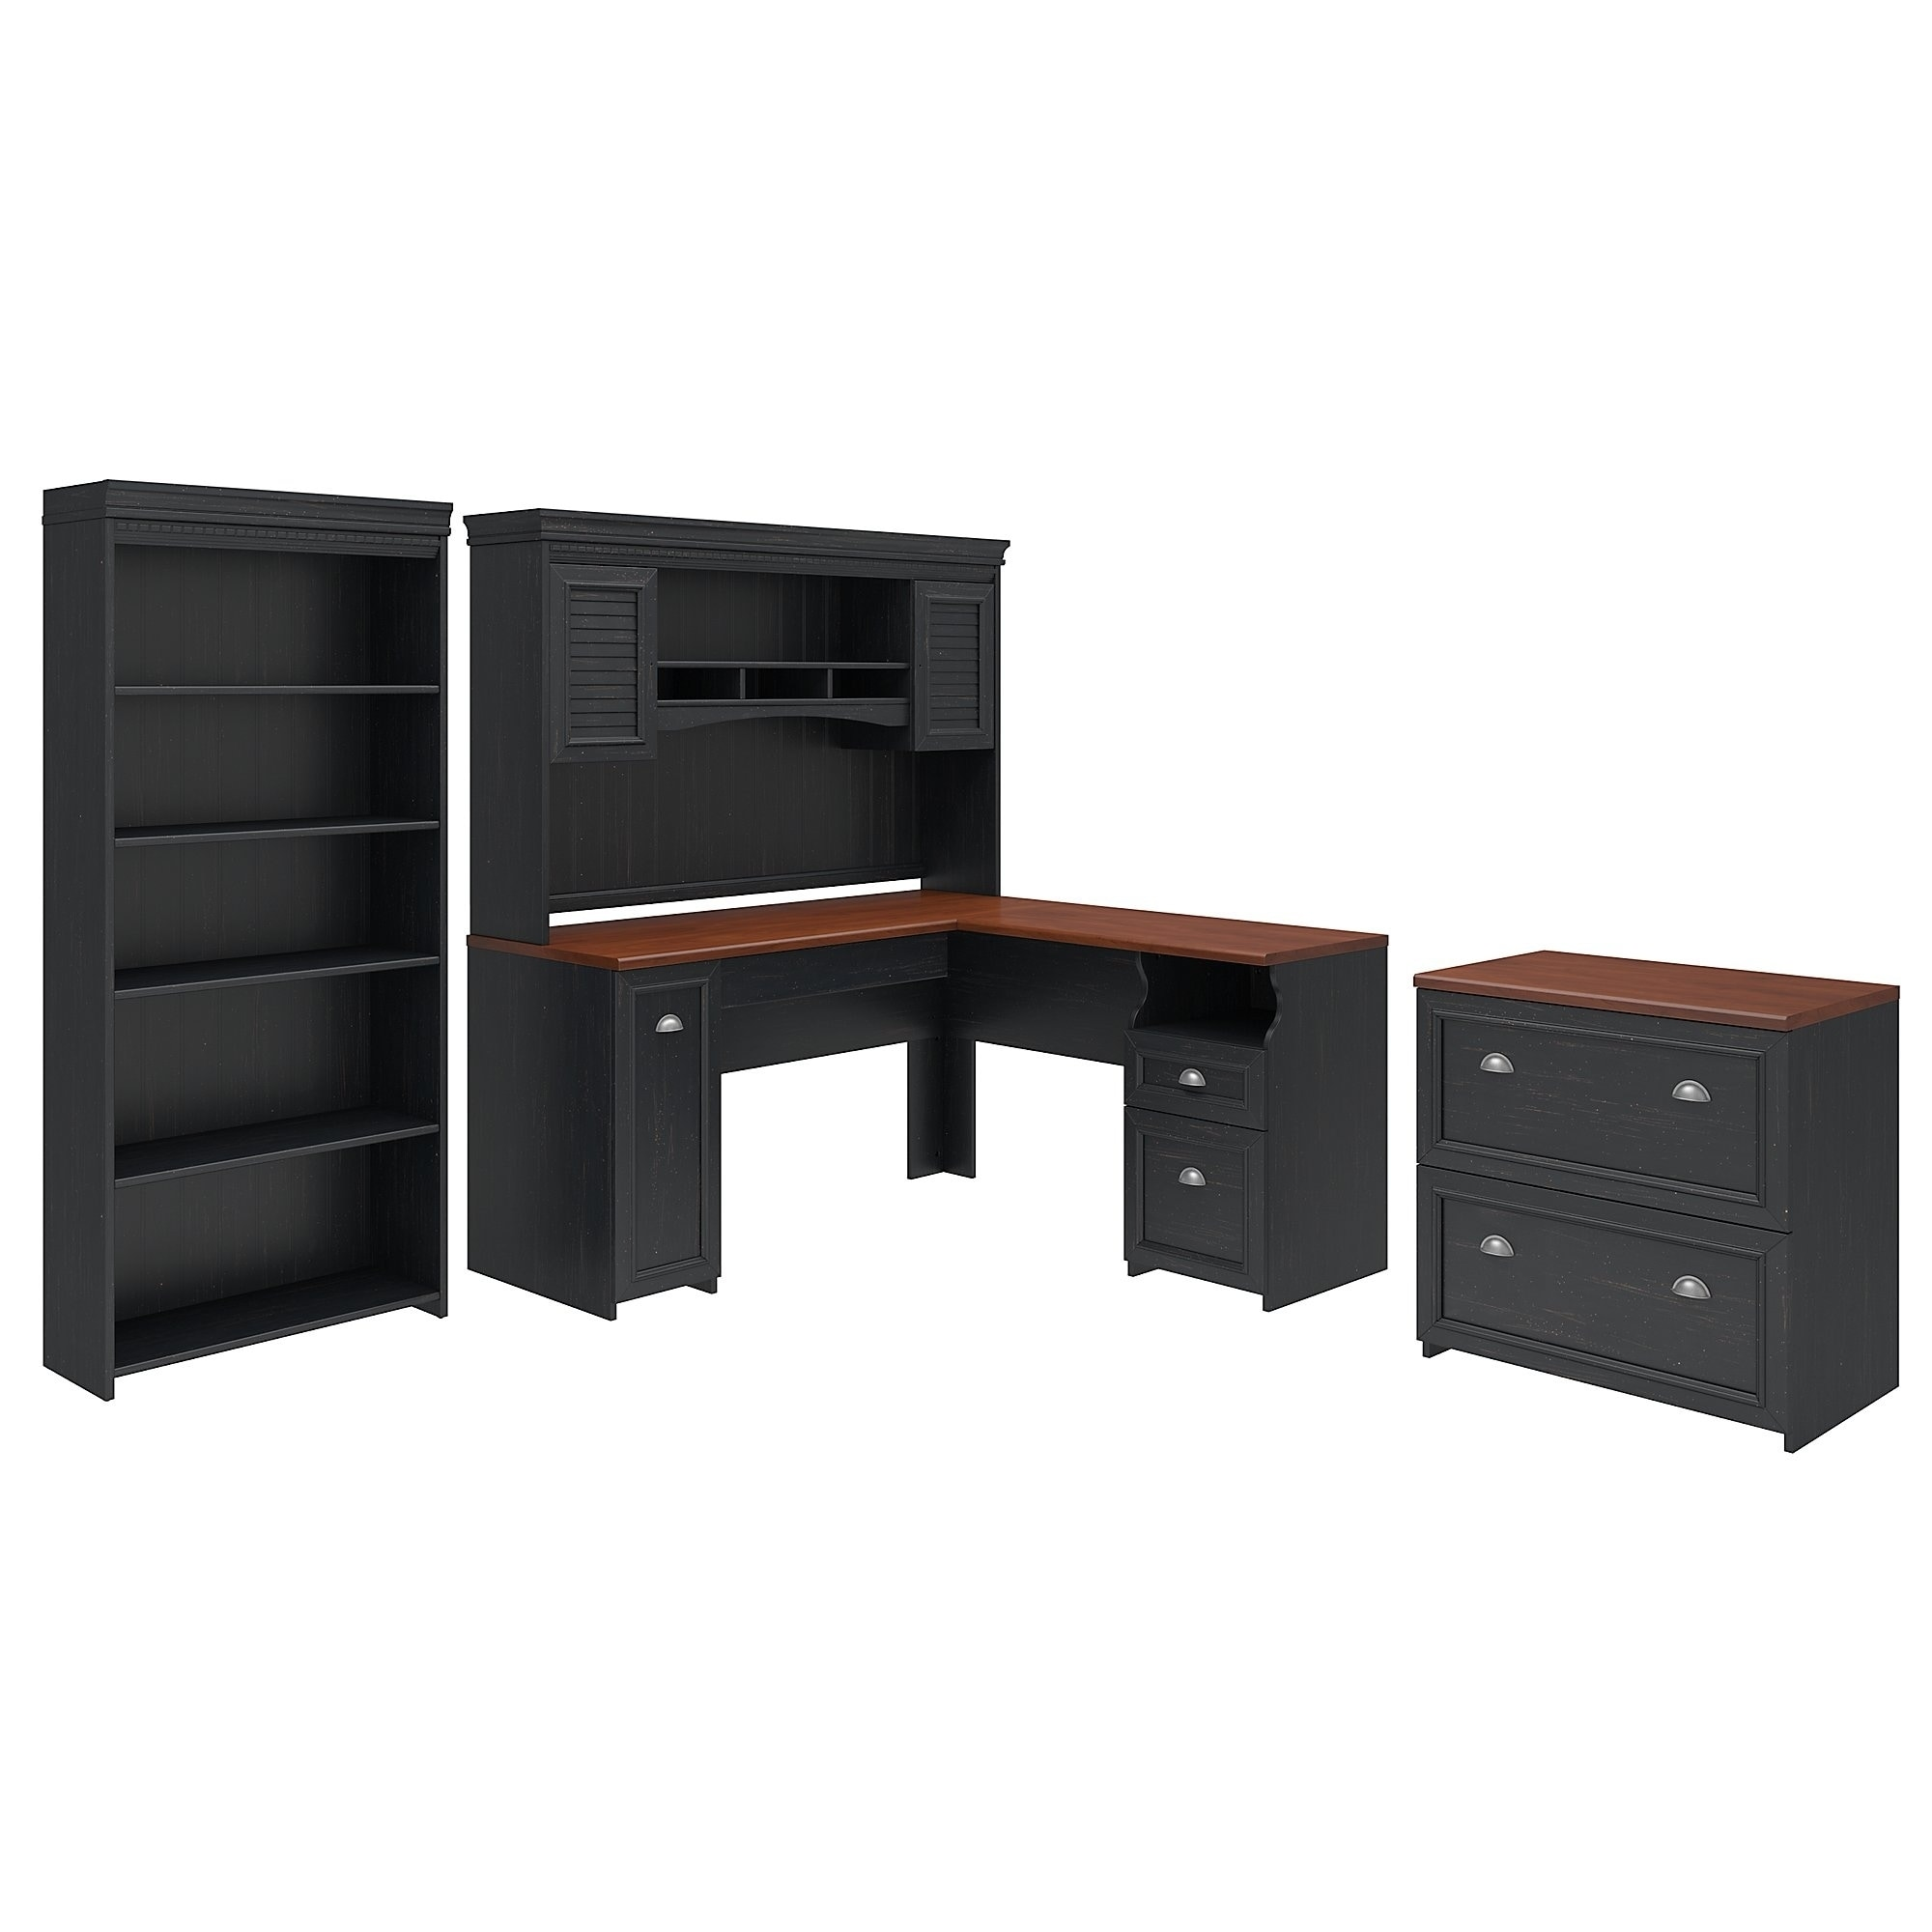 cabinet desk ideas fresh design remodel l hutch shaped office with about filing home